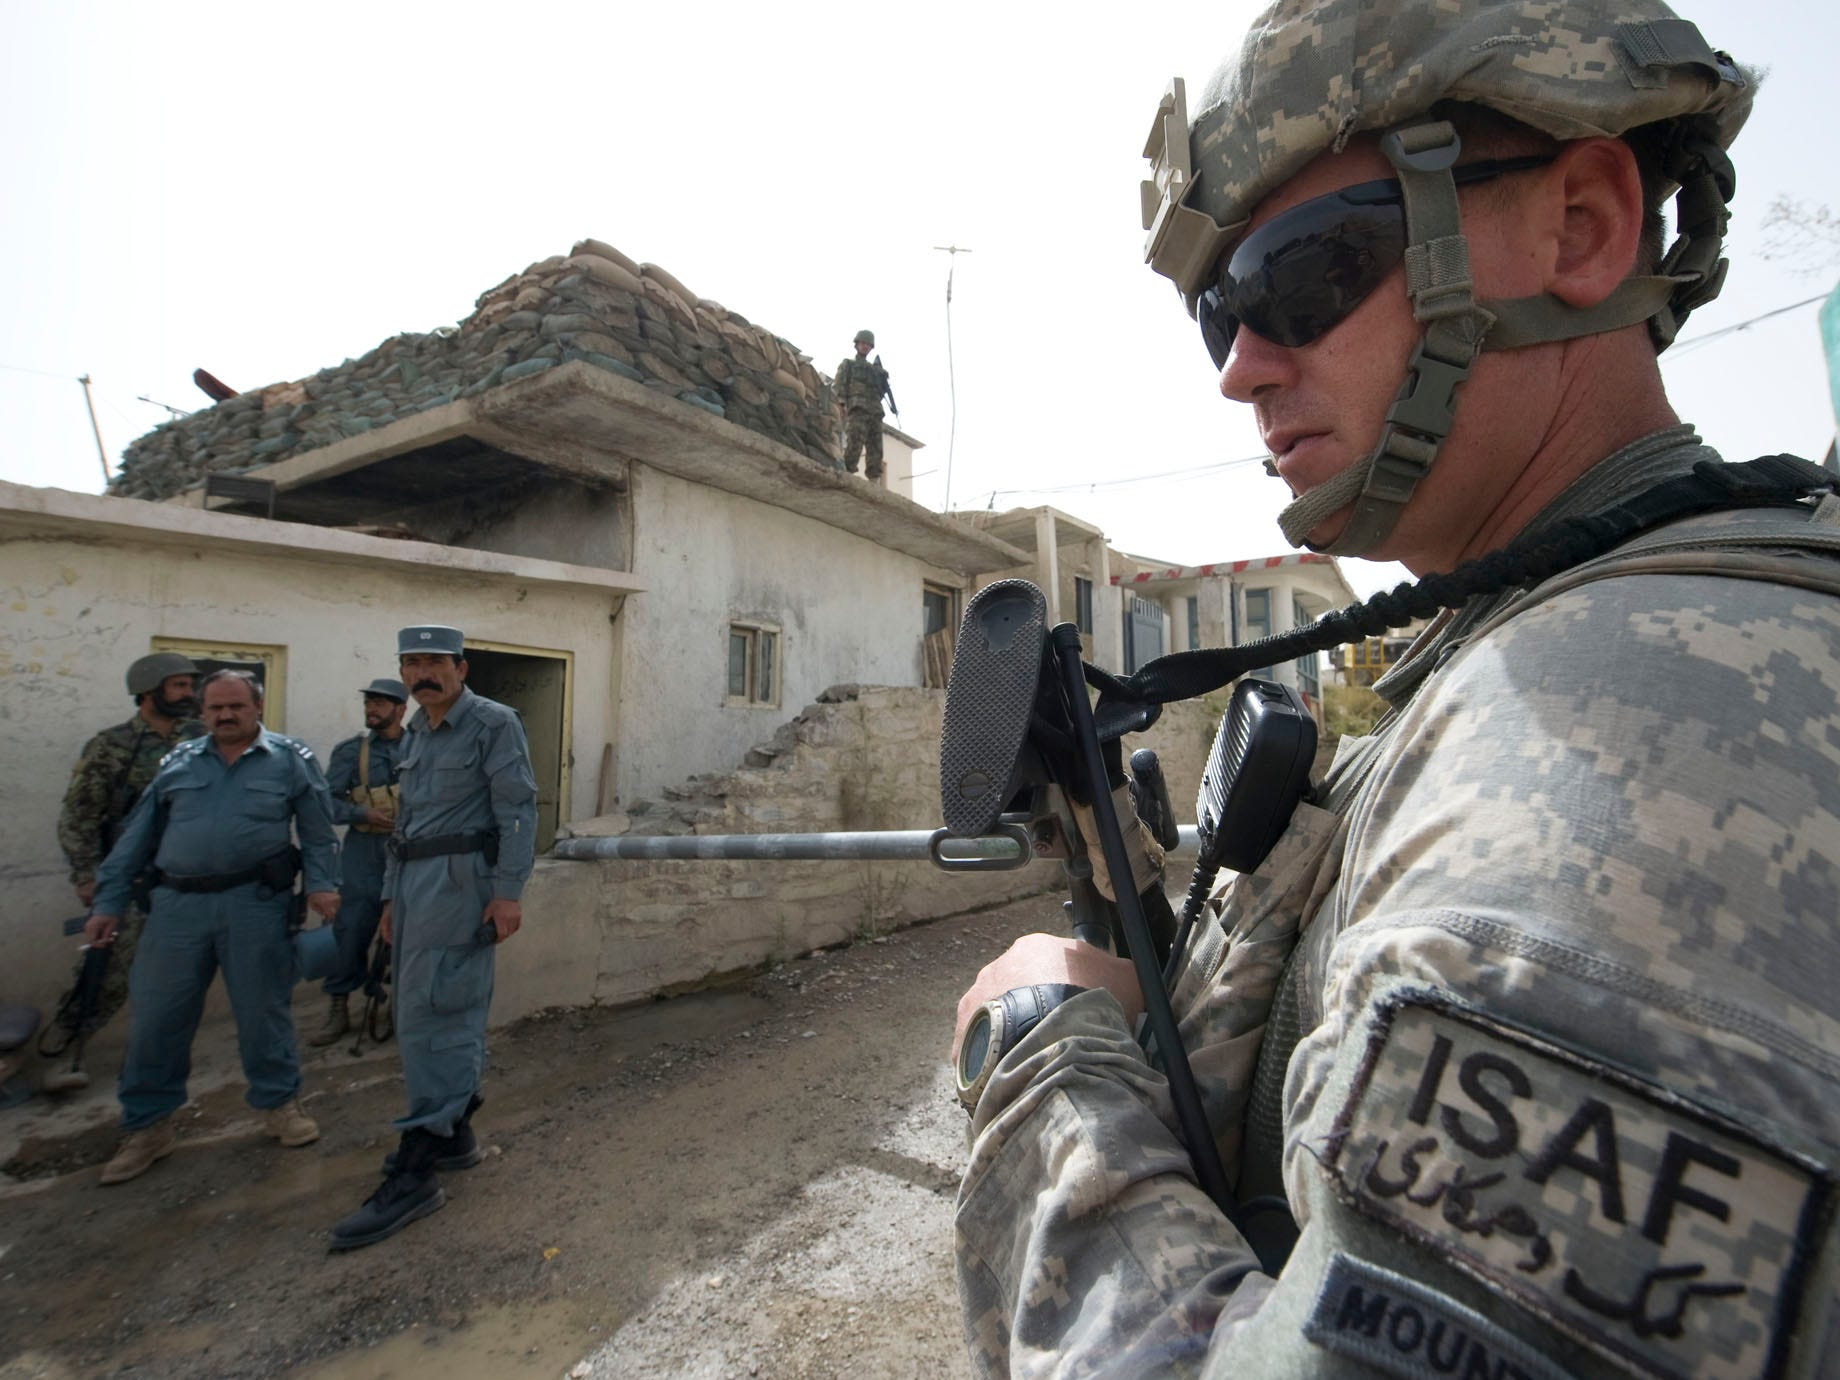 Vermont National Guard Sgt. Joseph Key of Charleston, W. Va., stands guard outside an Afghan Uniform Police check point in downtown Gardez City on election day, Saturday, September 18, 2010. A new police station on the north side of the city was attacked with mortar and rocket fire, but no injuries were reported.